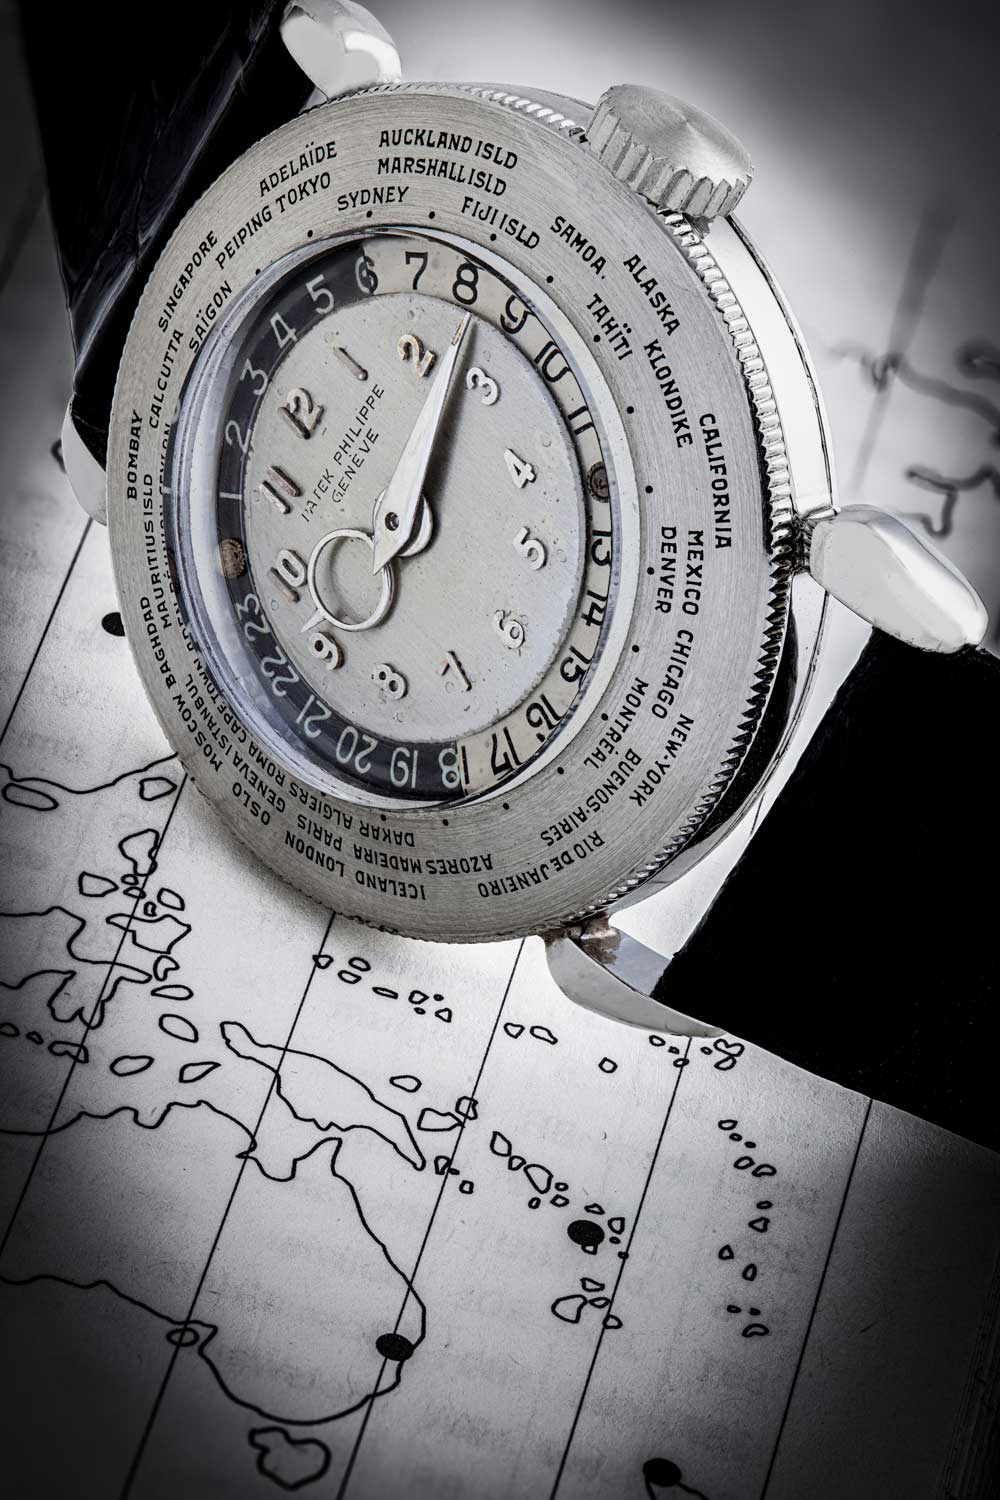 """Christie's sold the Patek Philippe platinum ref. 1415 HU for HKD 14,650,00 at """"The Legends of Time"""" auction in Hong Kong on May 22."""